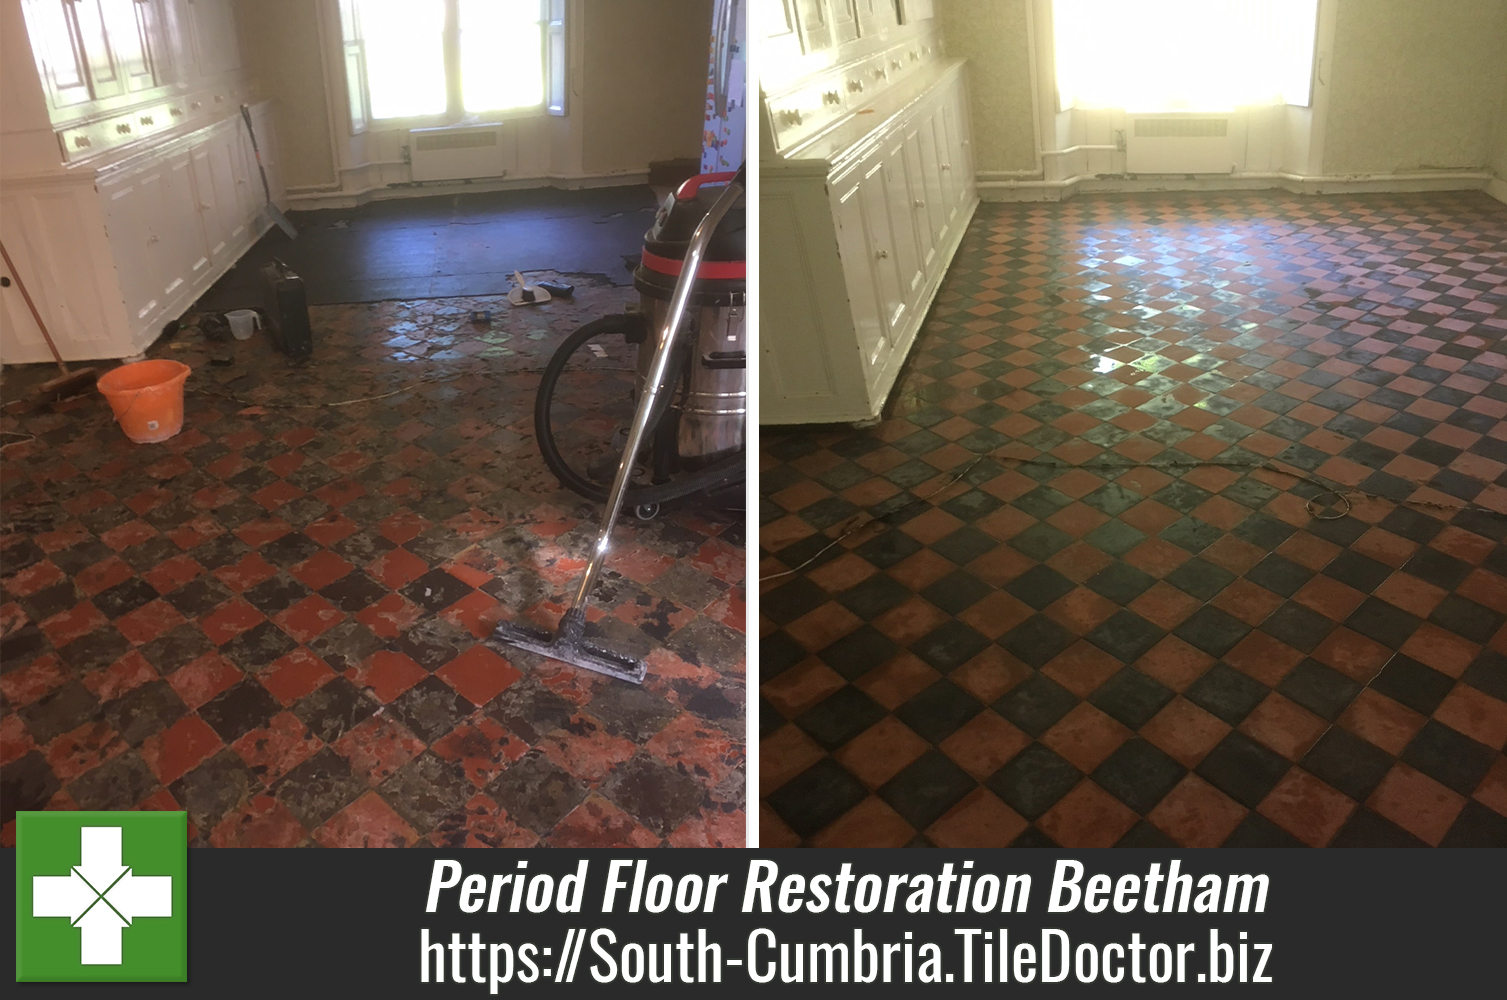 Red and Black Victorian Tiled Period Floor Restored in Beetham